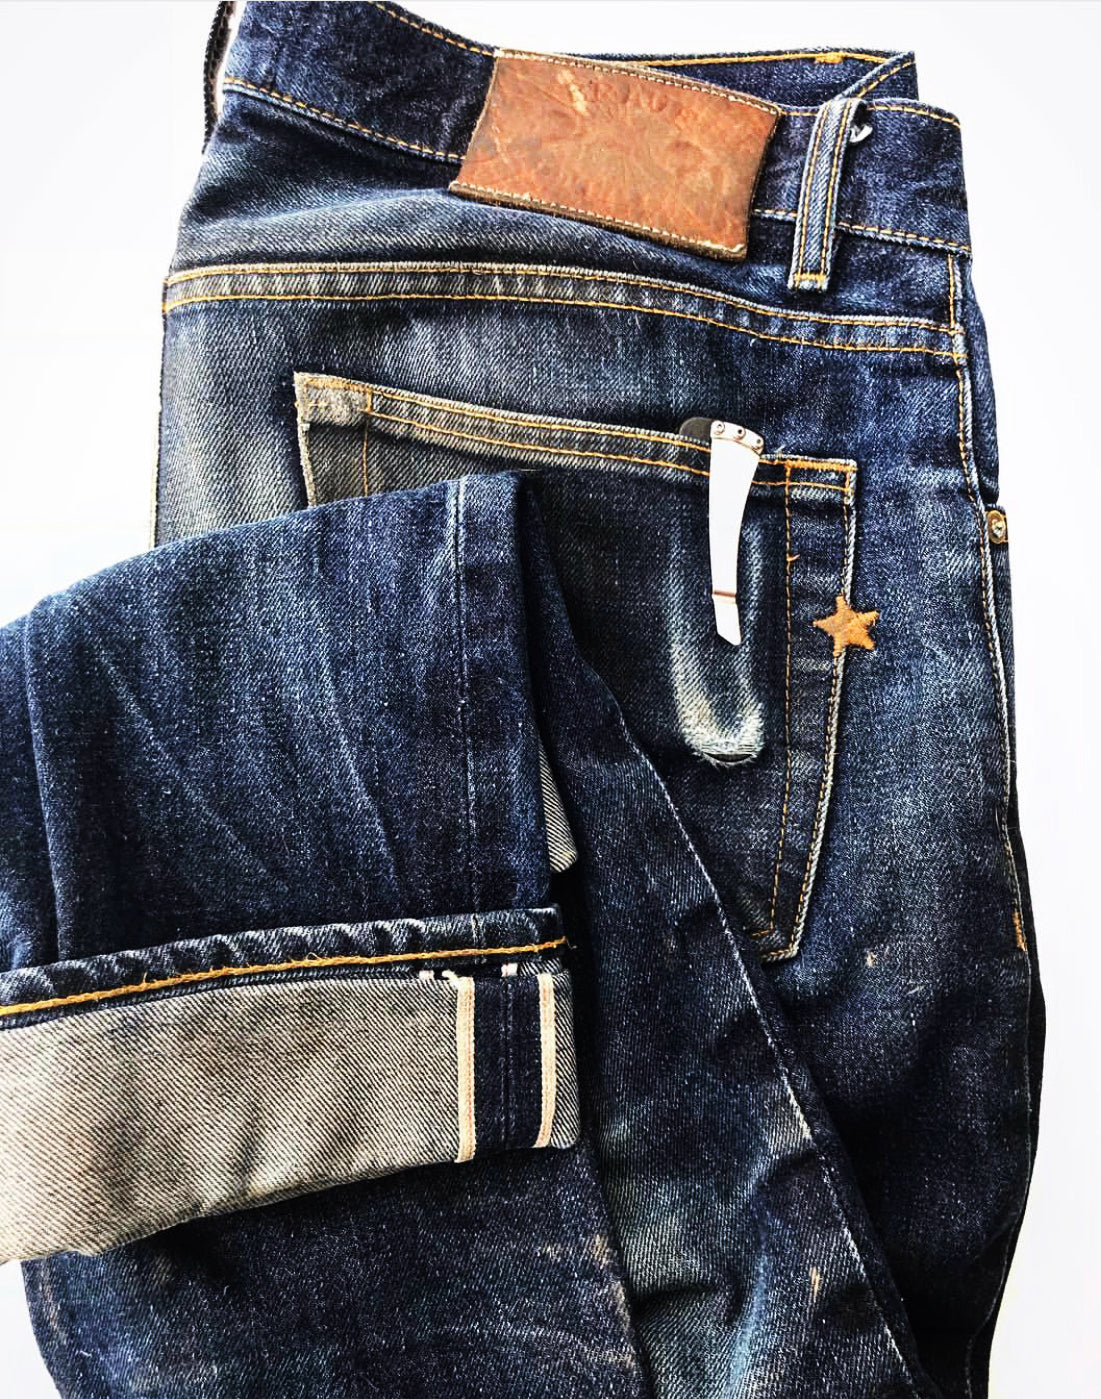 Affordable Selvedge Denim | Brave Star Selvage Jeans Factory